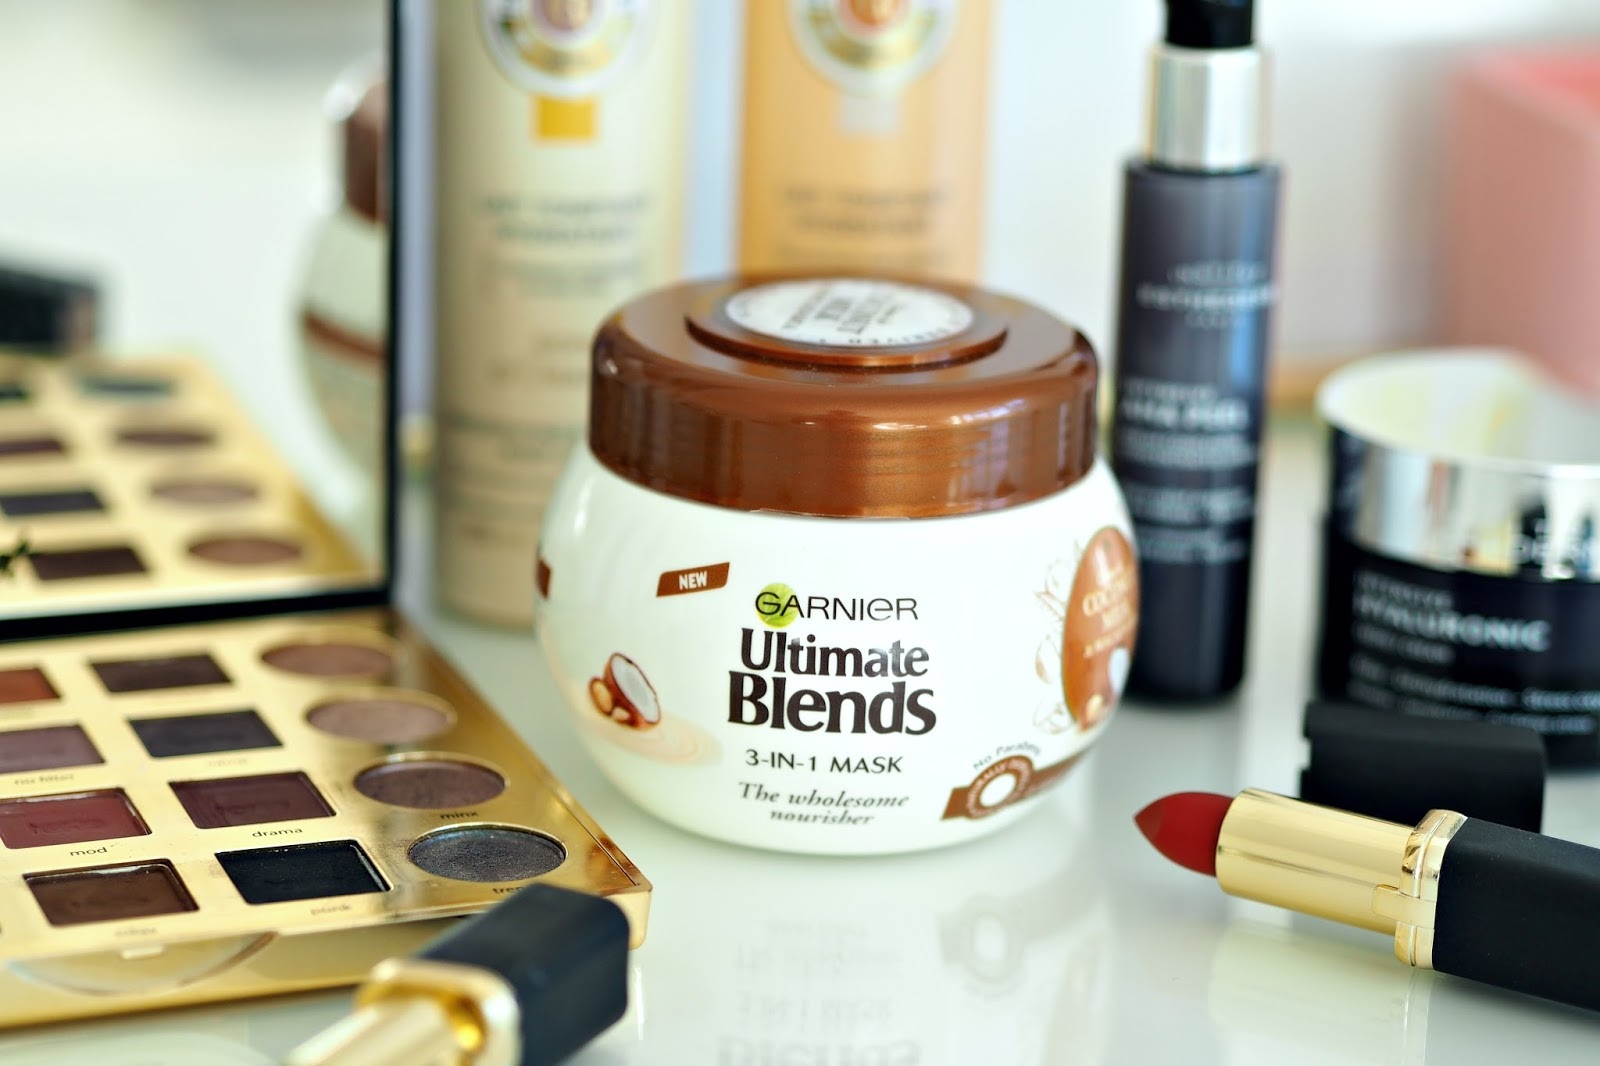 Garnier Ultimate Blends Coconut Milk & Macadamia Oil 3-in-1 Mask